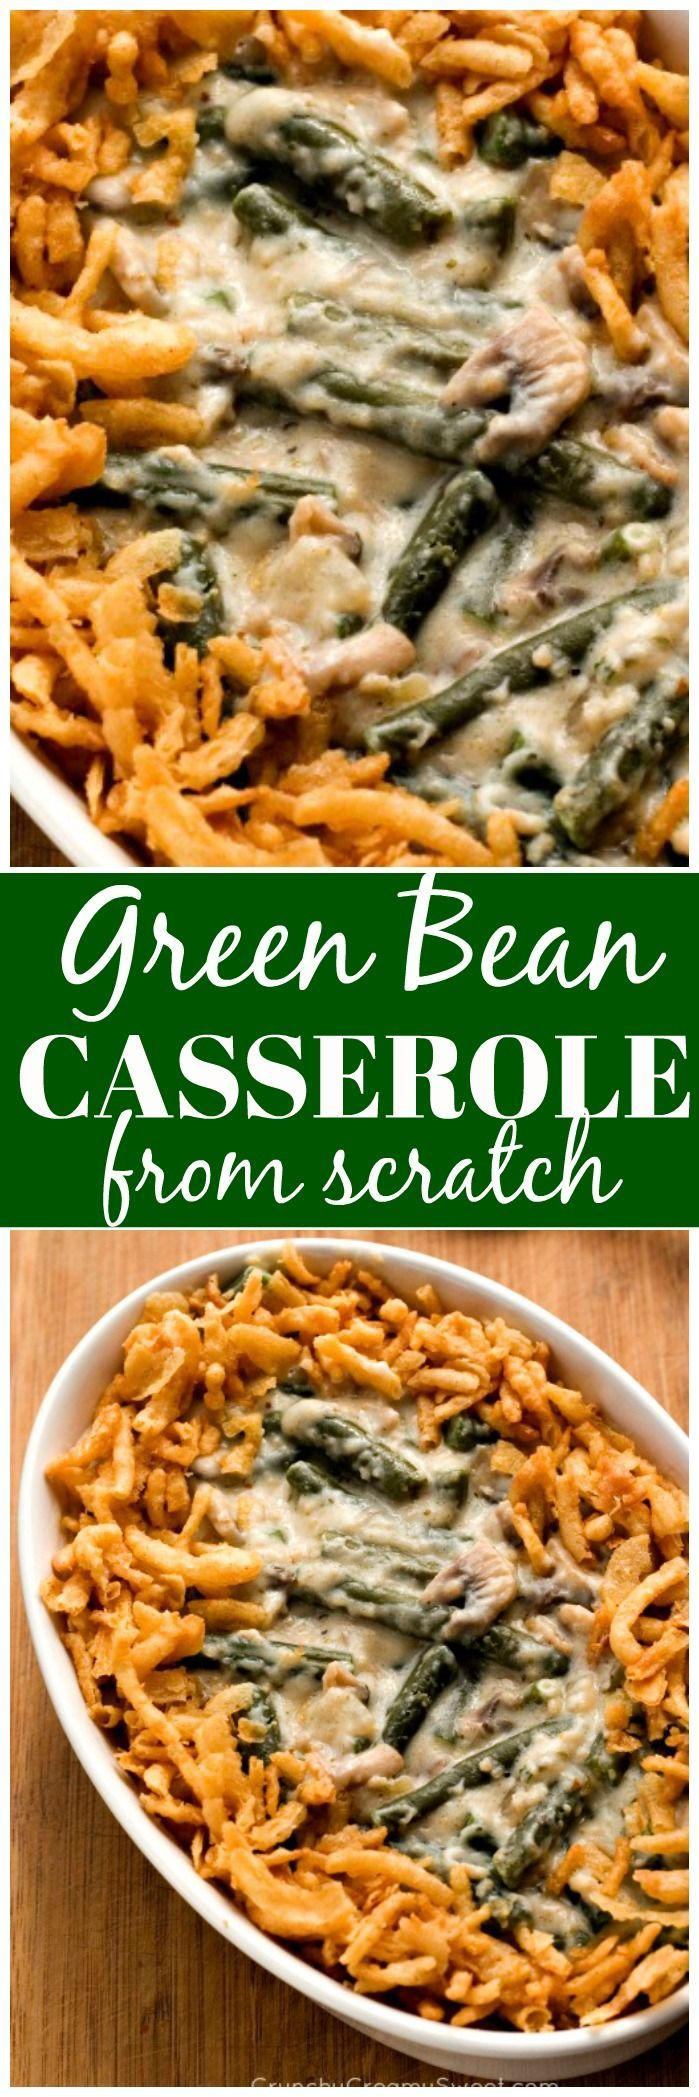 Green Bean Casserole From Scratch - the healthiest way to make this creamy and delicious traditional dish. It's so easy - there is no reason not to make if from scratch!